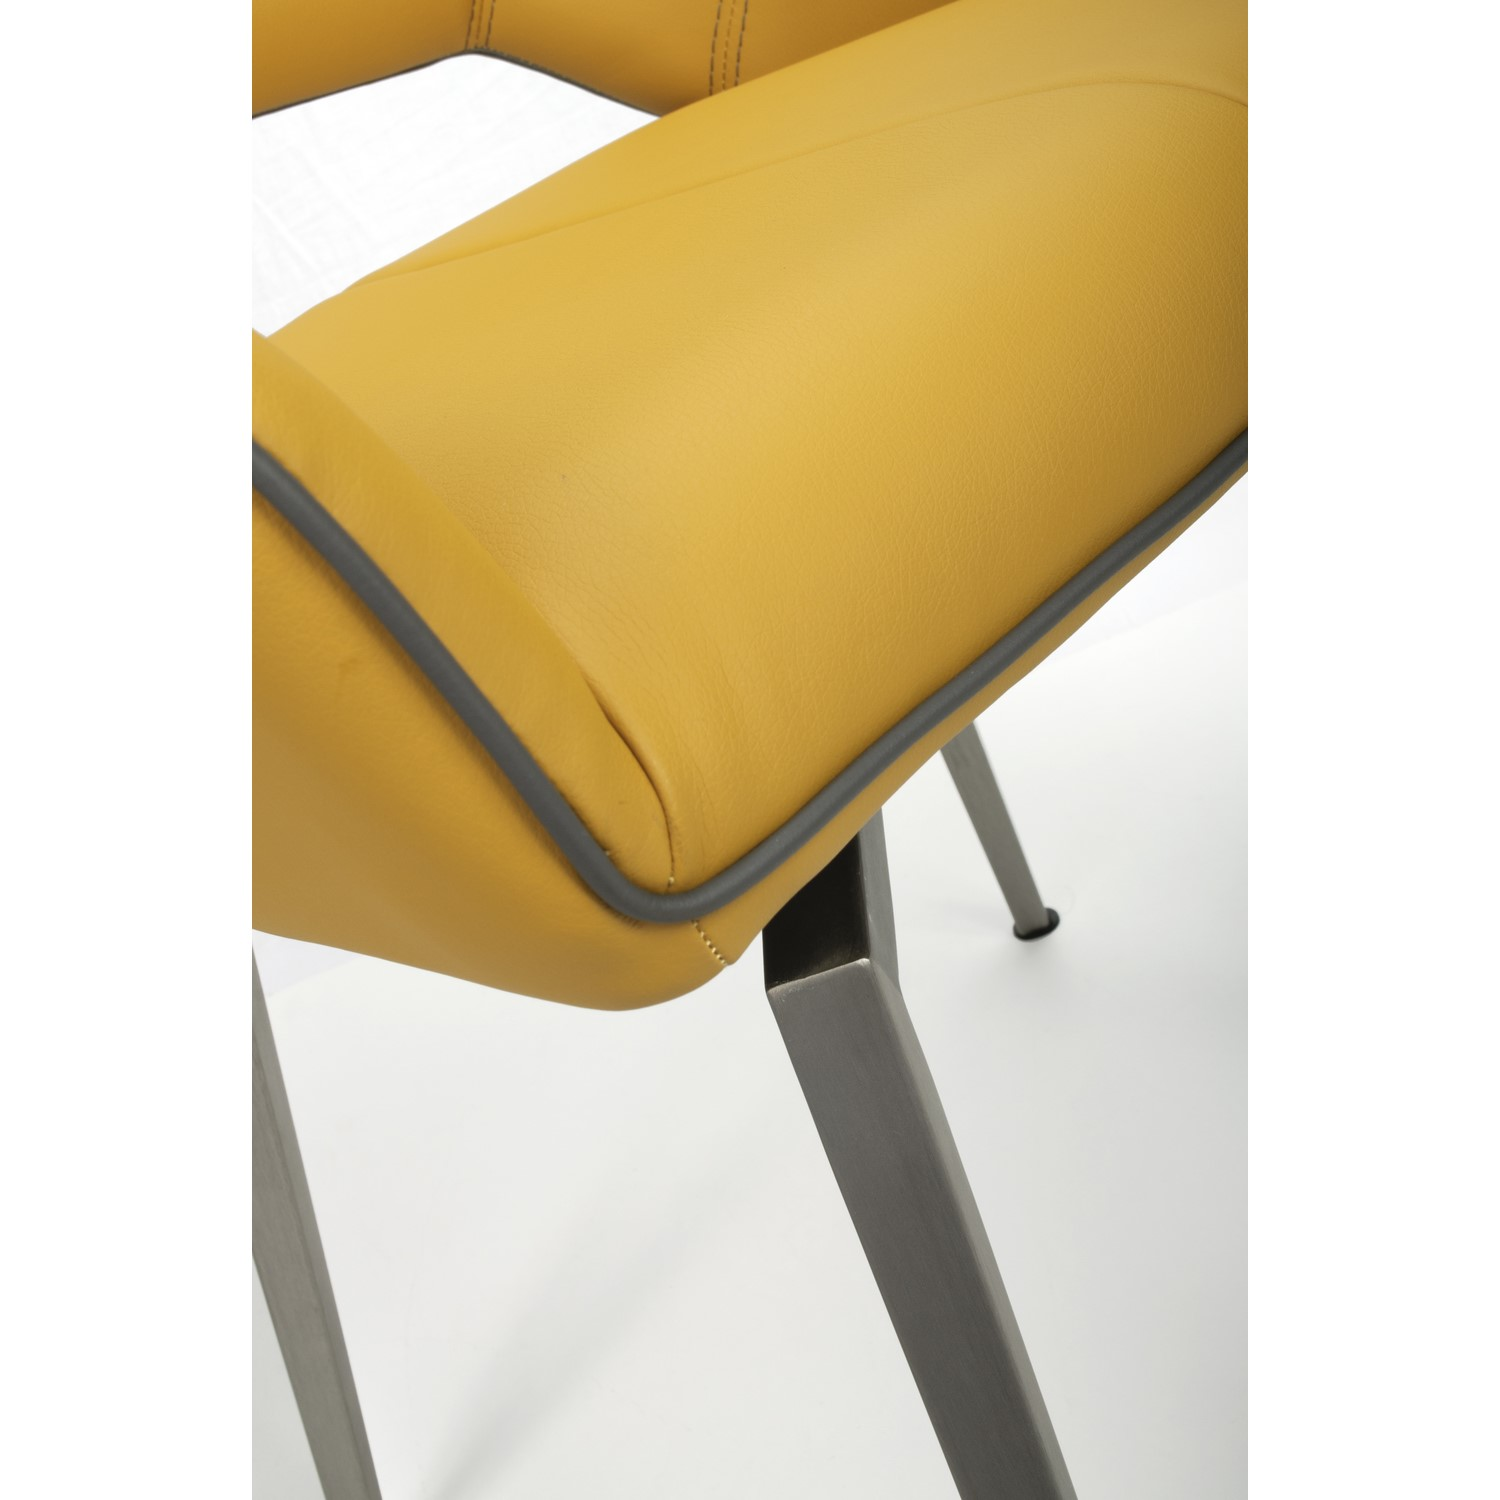 Tremendous Vintage Carseat Pair Of Chairs In Yellow Faux Leather Gmtry Best Dining Table And Chair Ideas Images Gmtryco